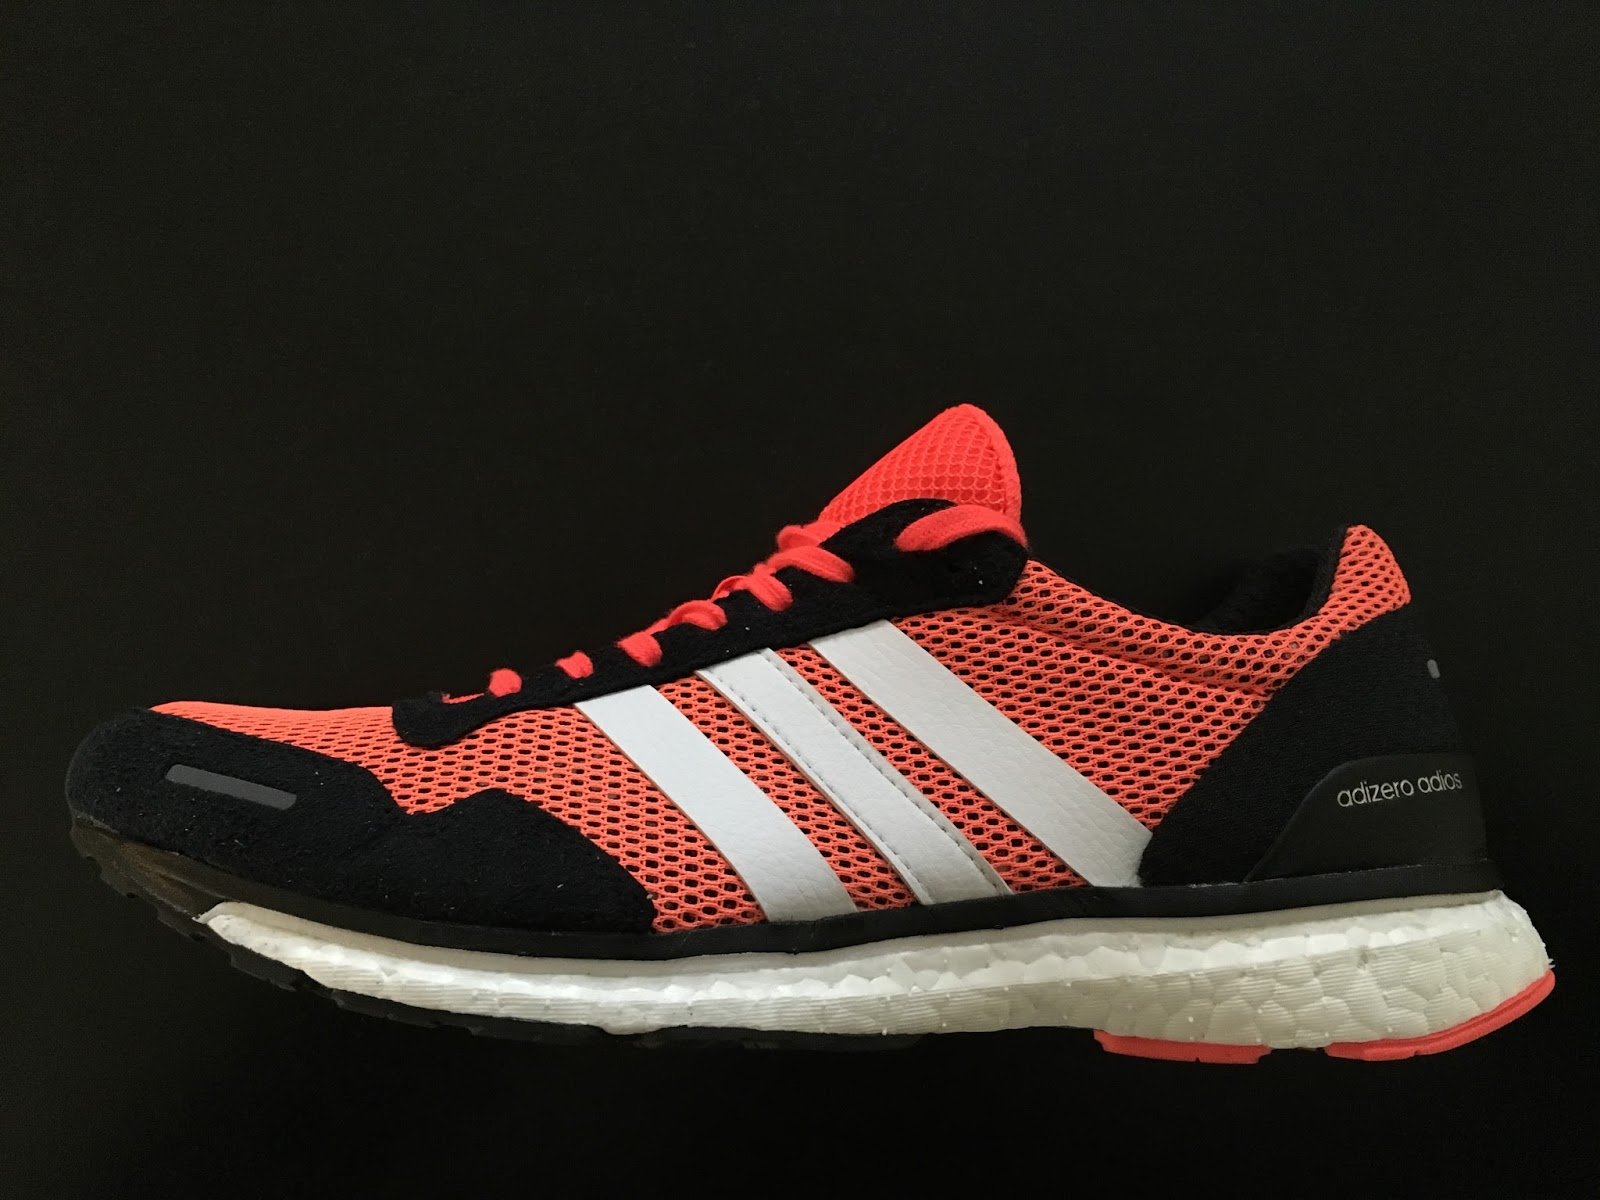 road trail run adidas adizero adios boost 3 review world record holder relaxes. Black Bedroom Furniture Sets. Home Design Ideas